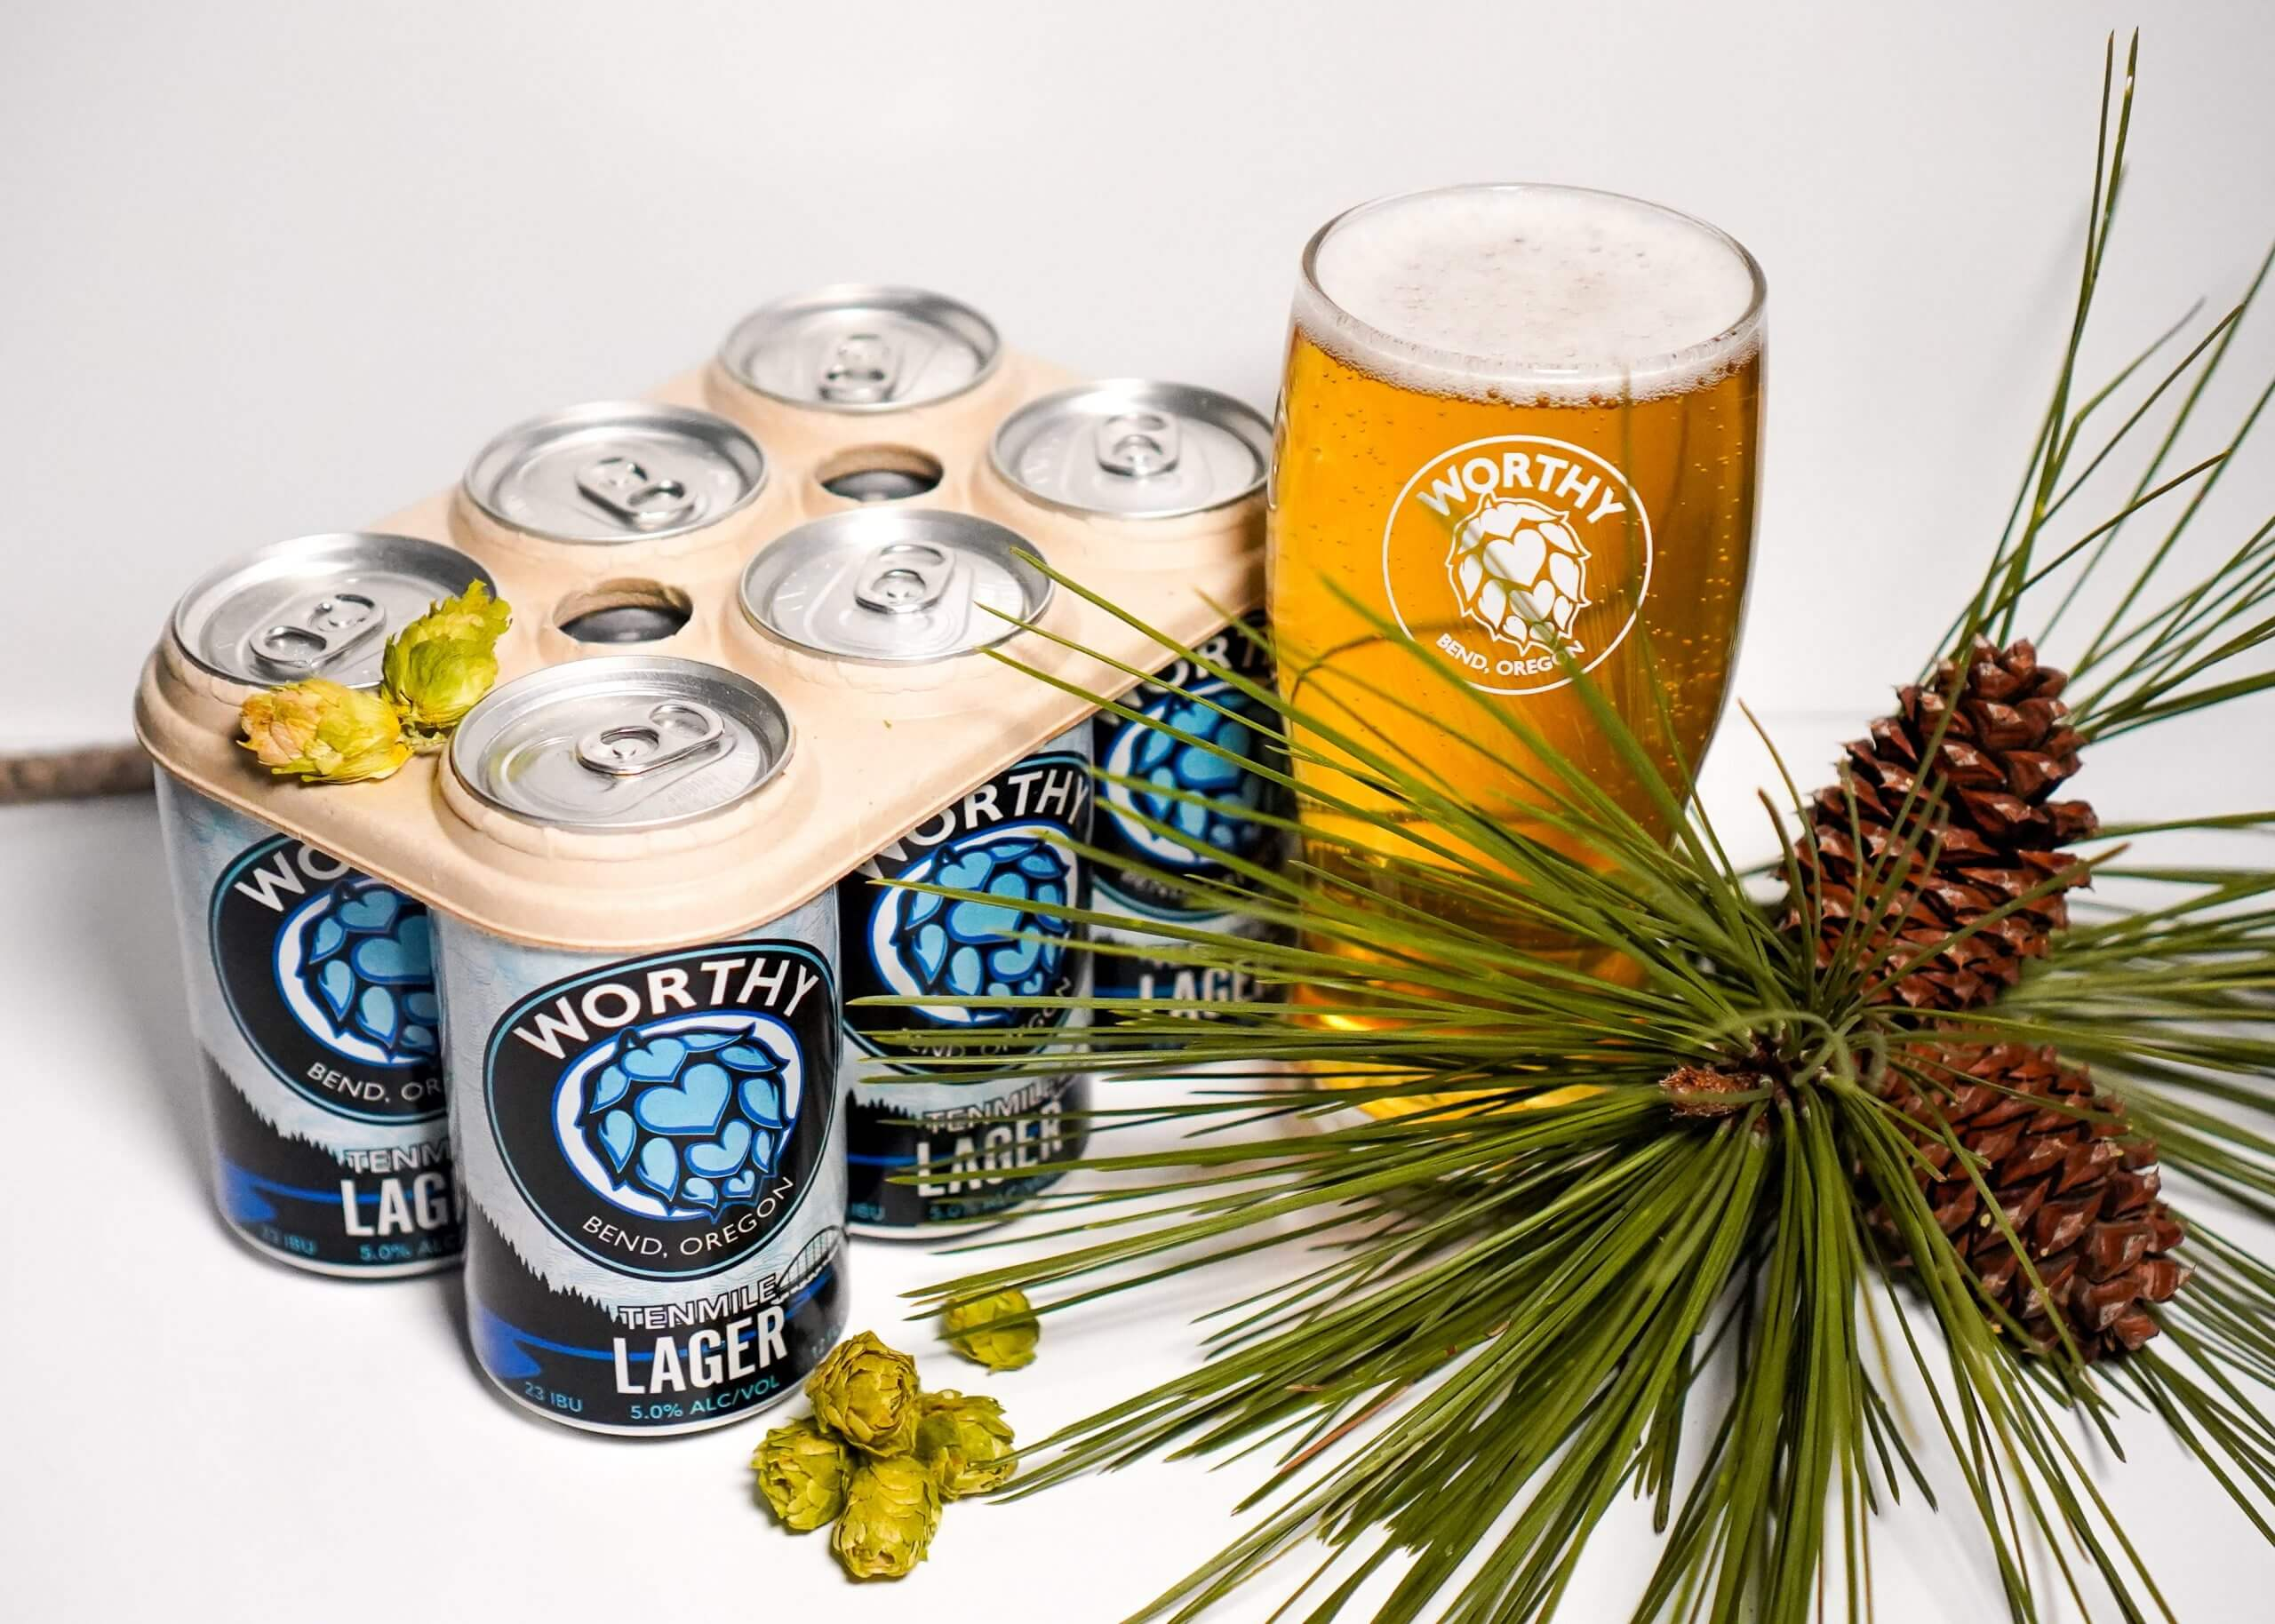 The Tenmile lager from Worthy Brewing Company features new six-pack carriers that are composed of organic plant-based material and completely decomposes in about a month.